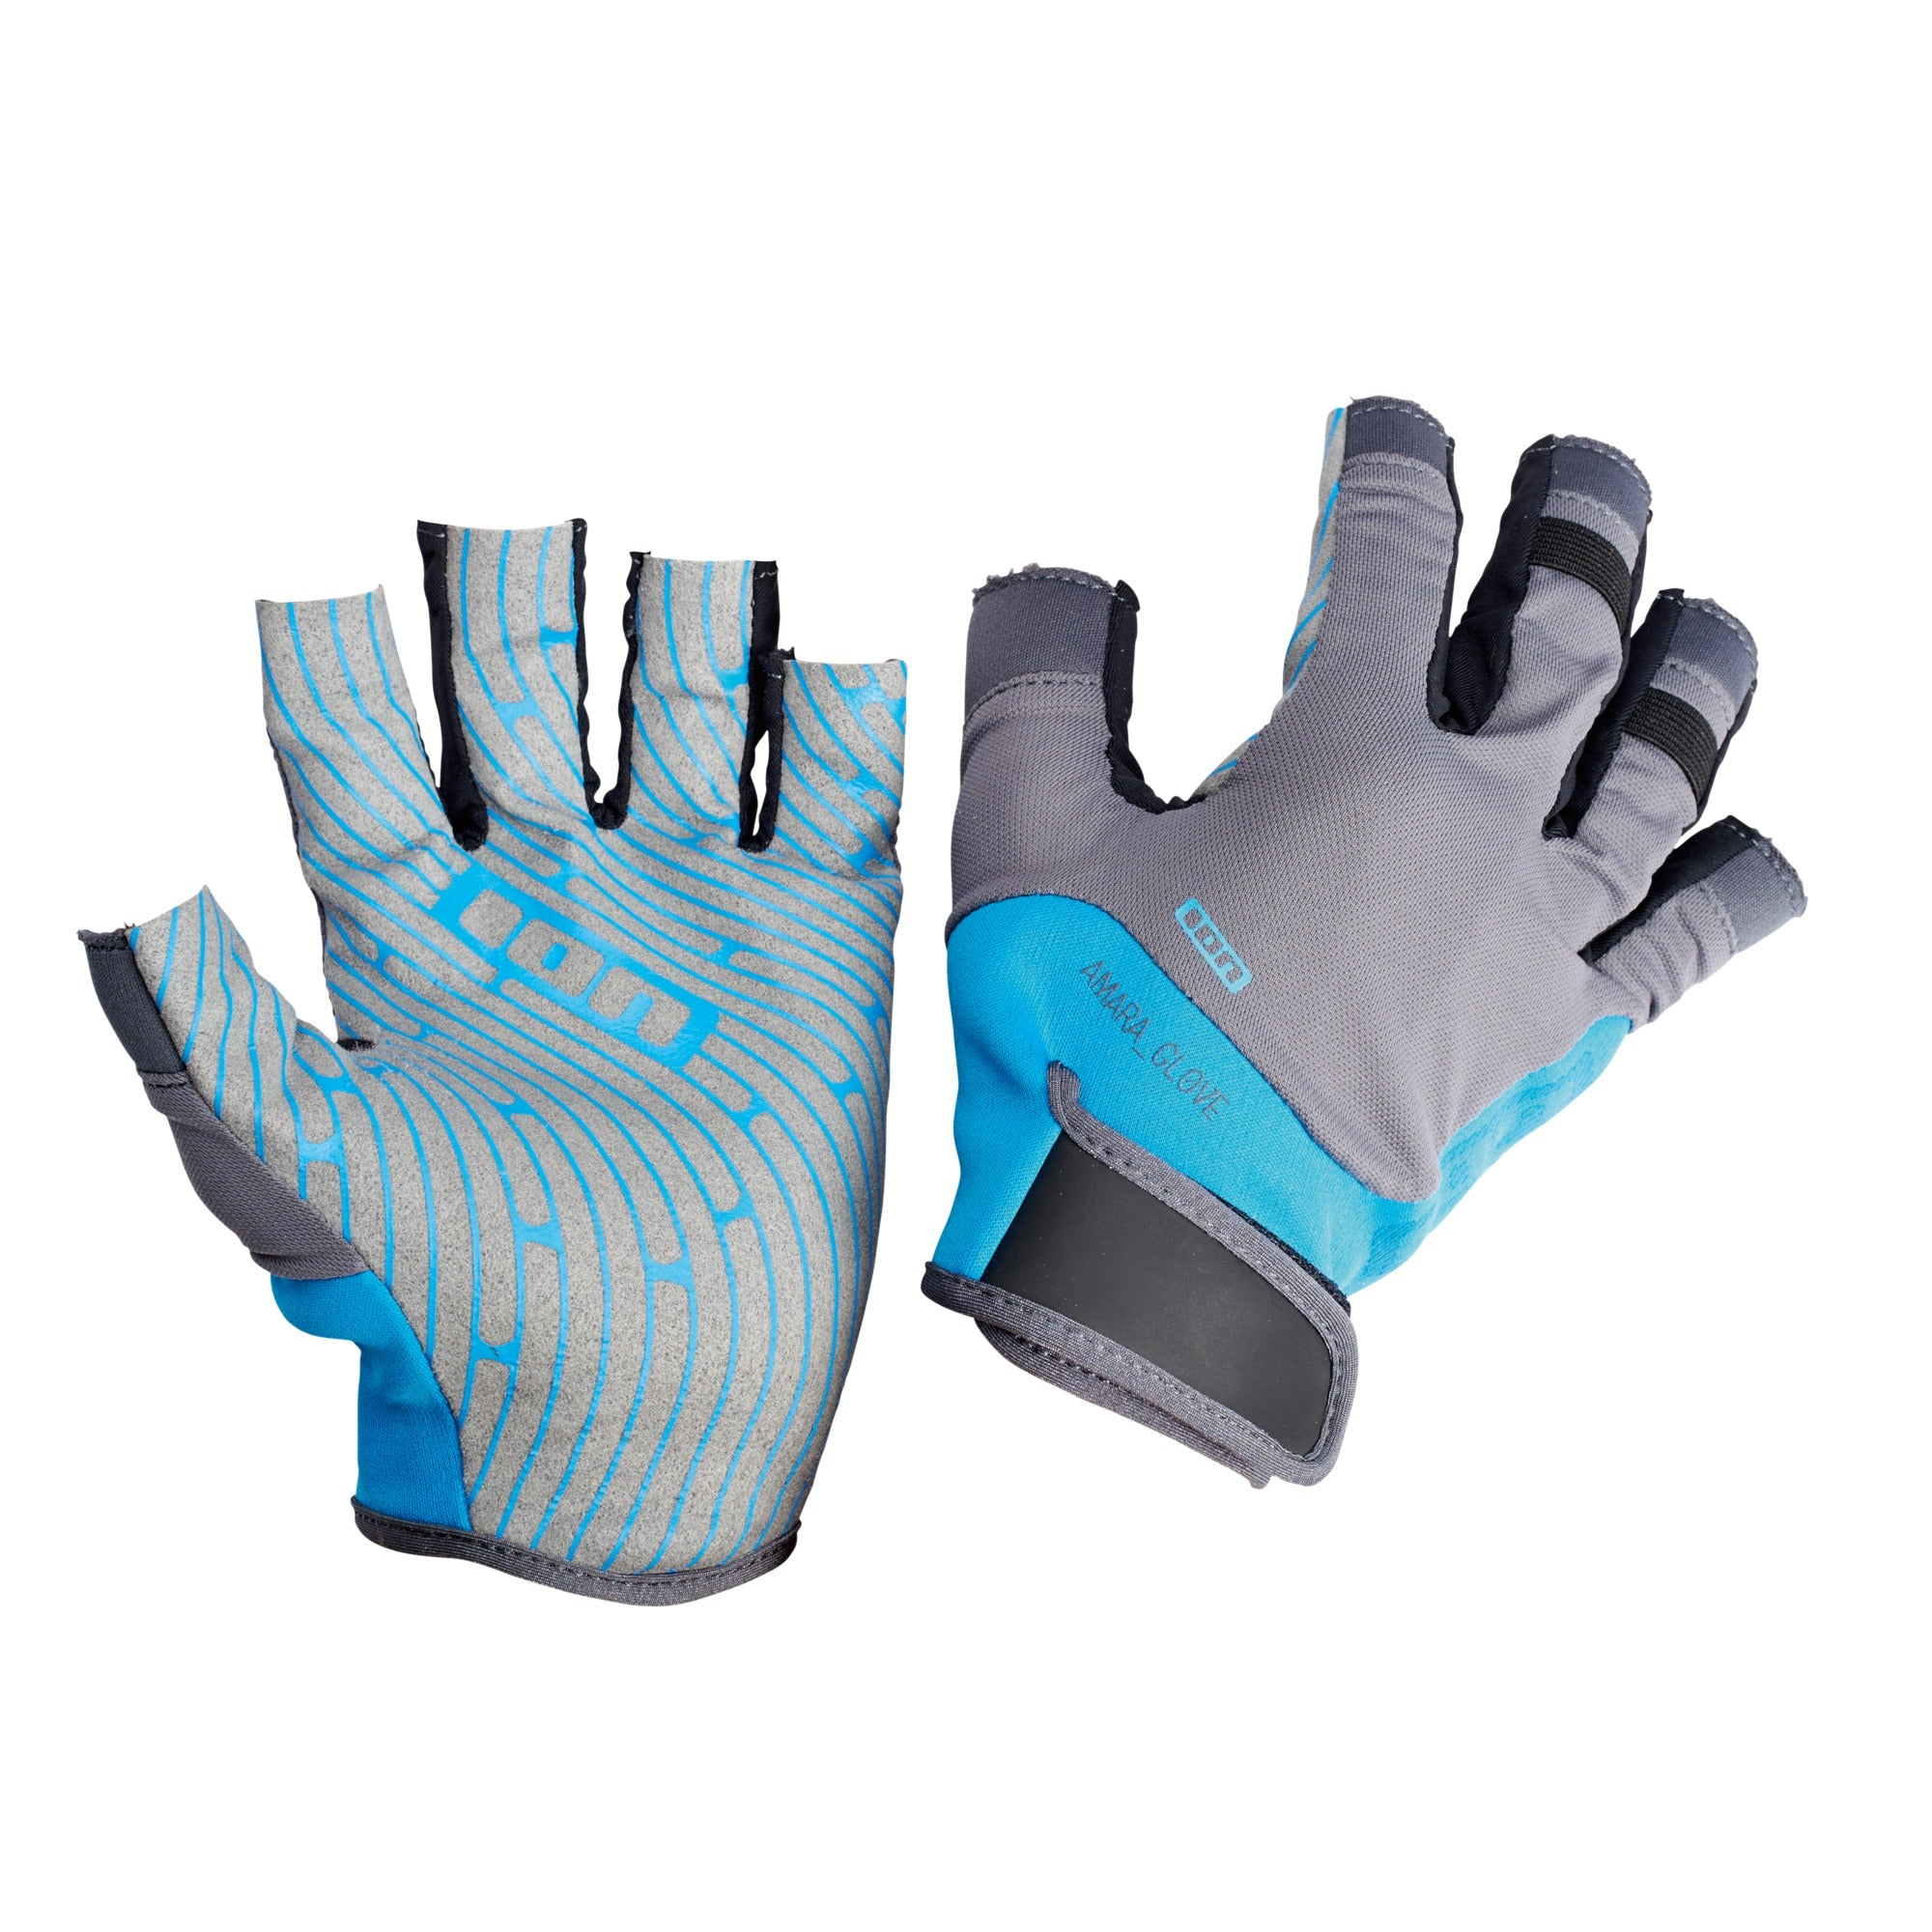 AMARA GLOVES HALF FINGER BLUE/GREY